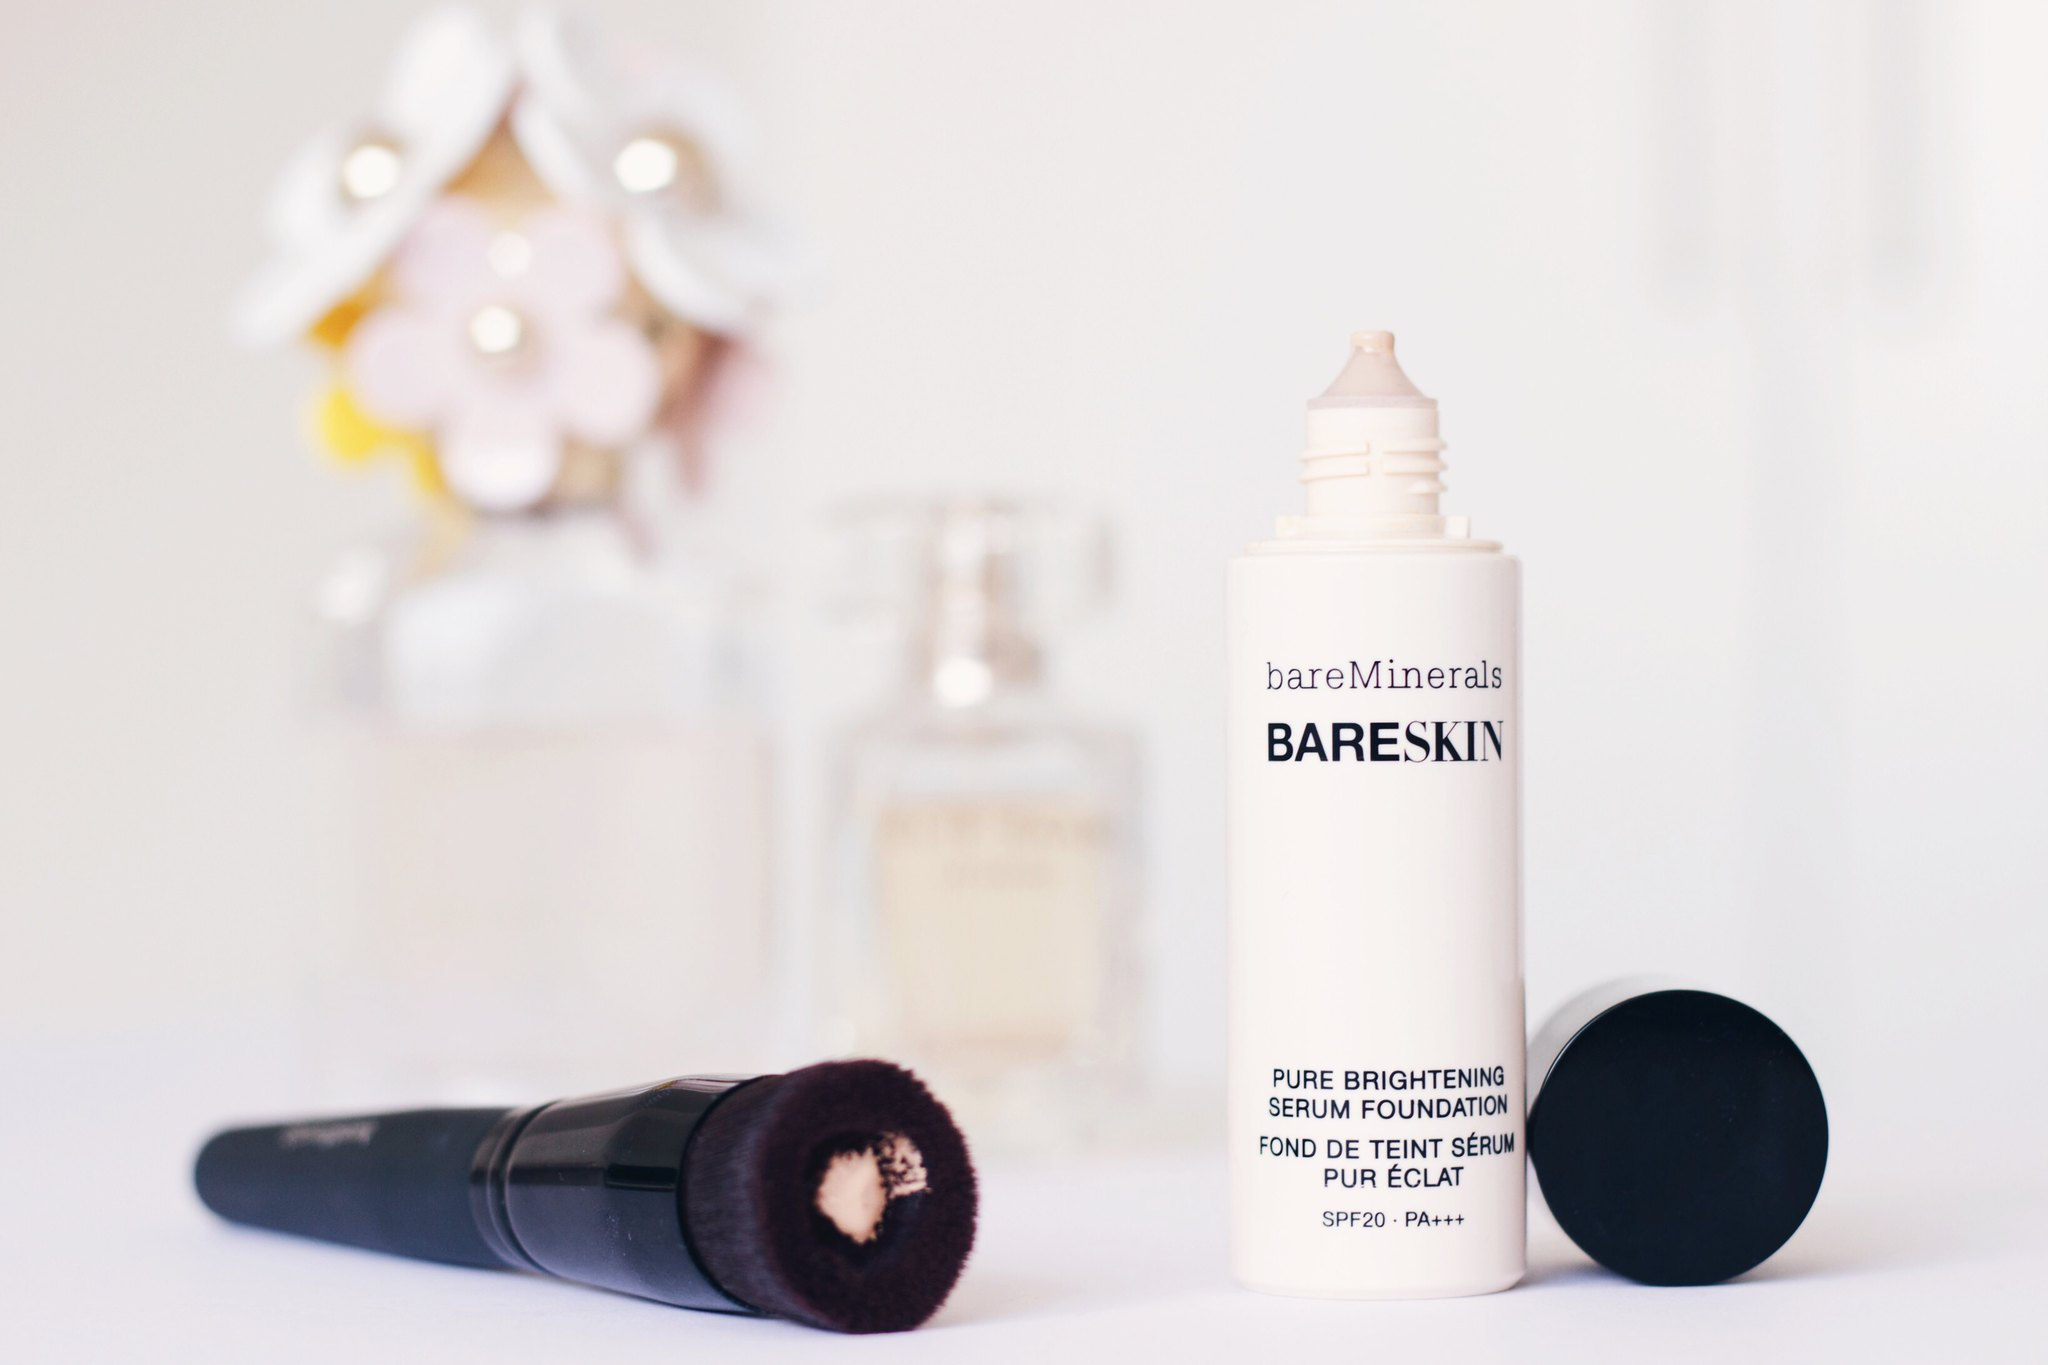 bareMinerals Bareskin Foundation Review